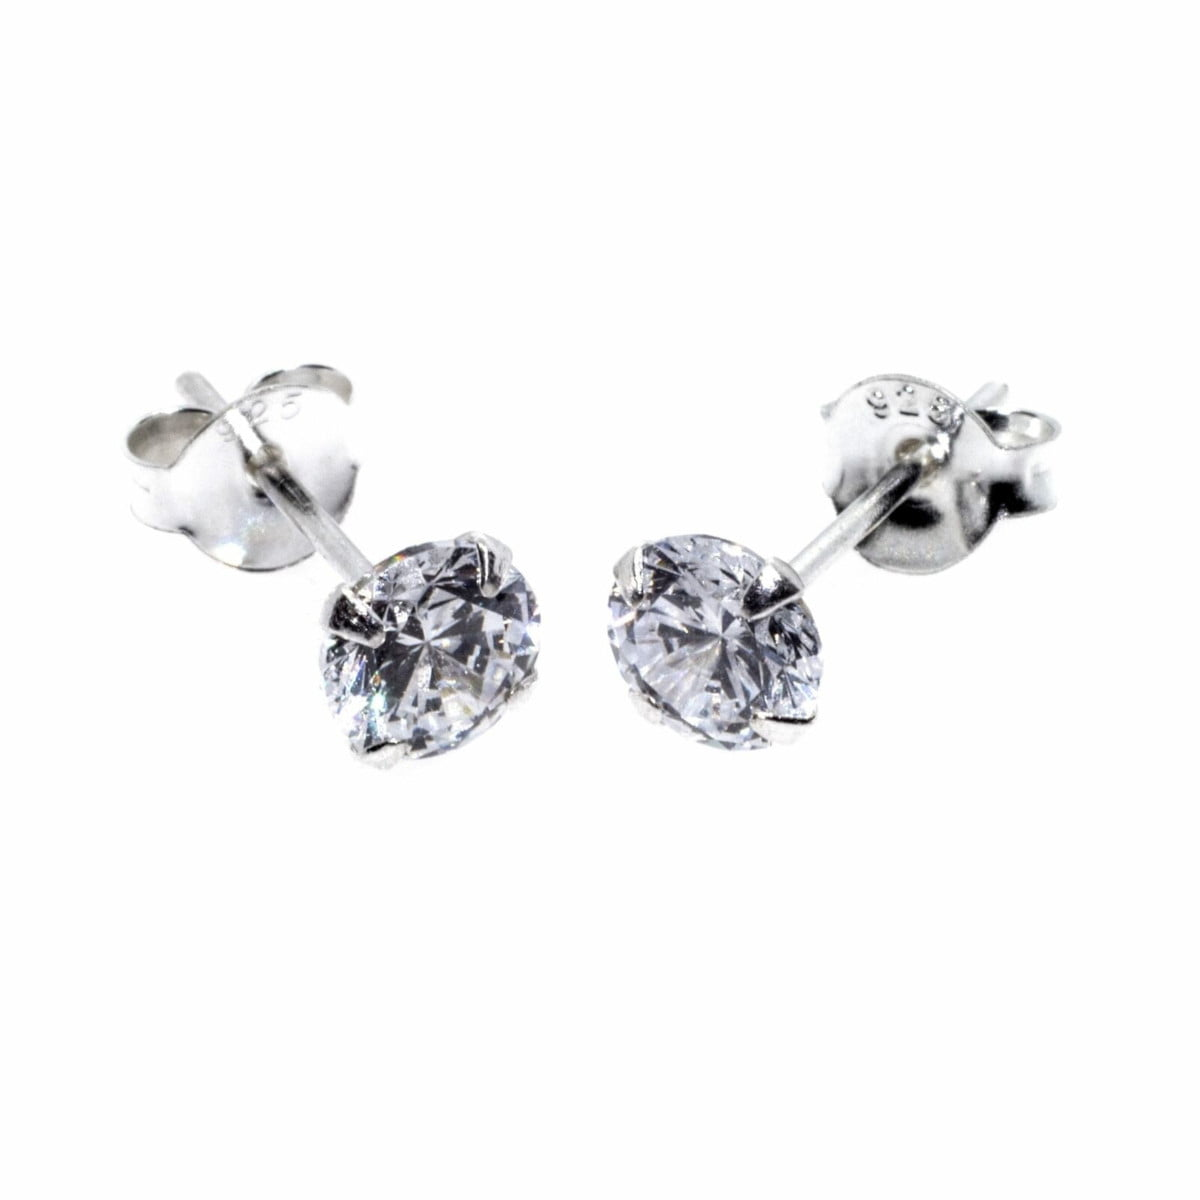 5 mm clear CZ stud round solitaire earrings in sterling silver 1